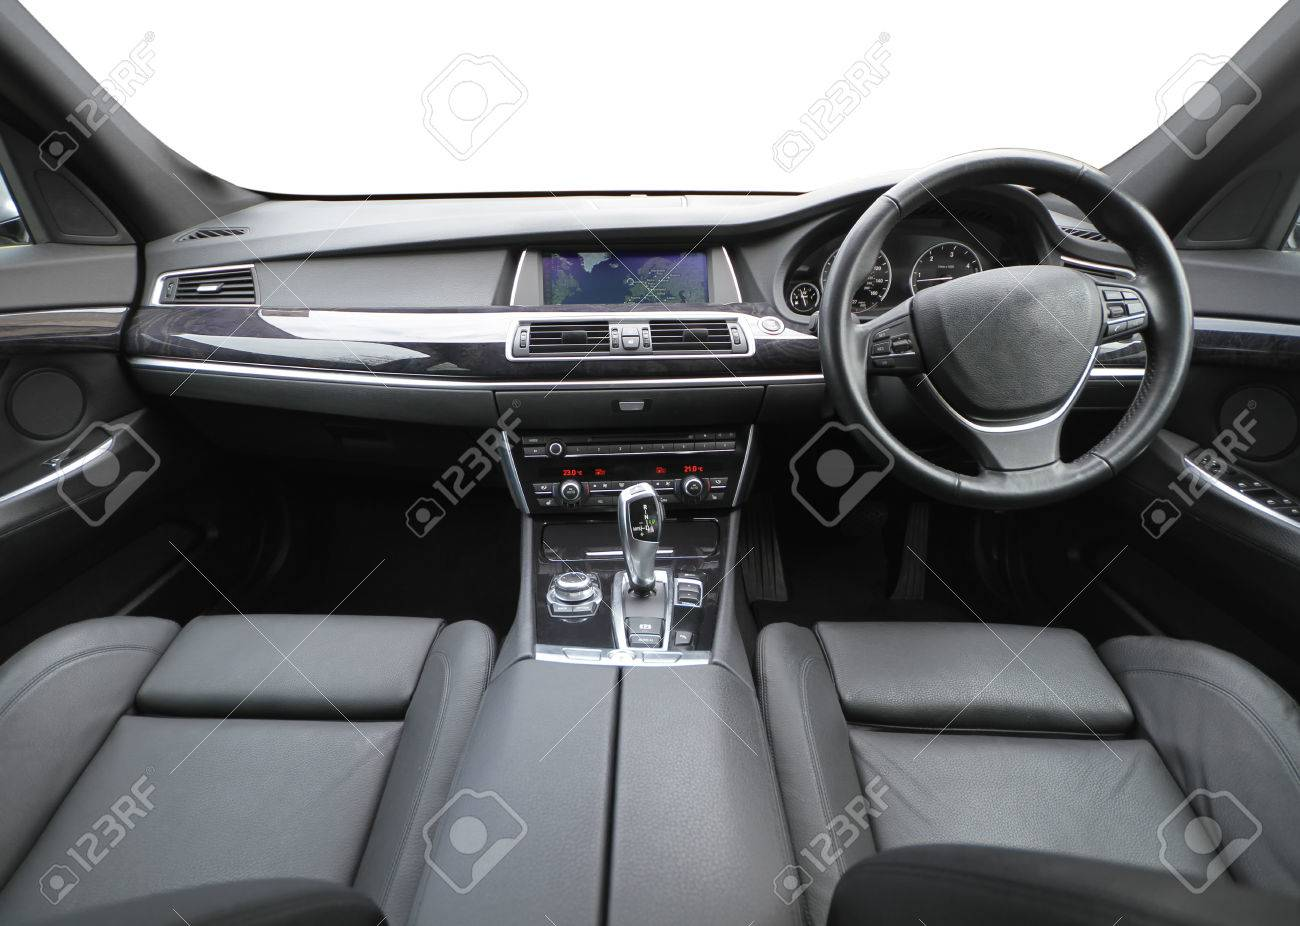 And Detailed Wide Shot Showing The Inside Of A High Class Car ...